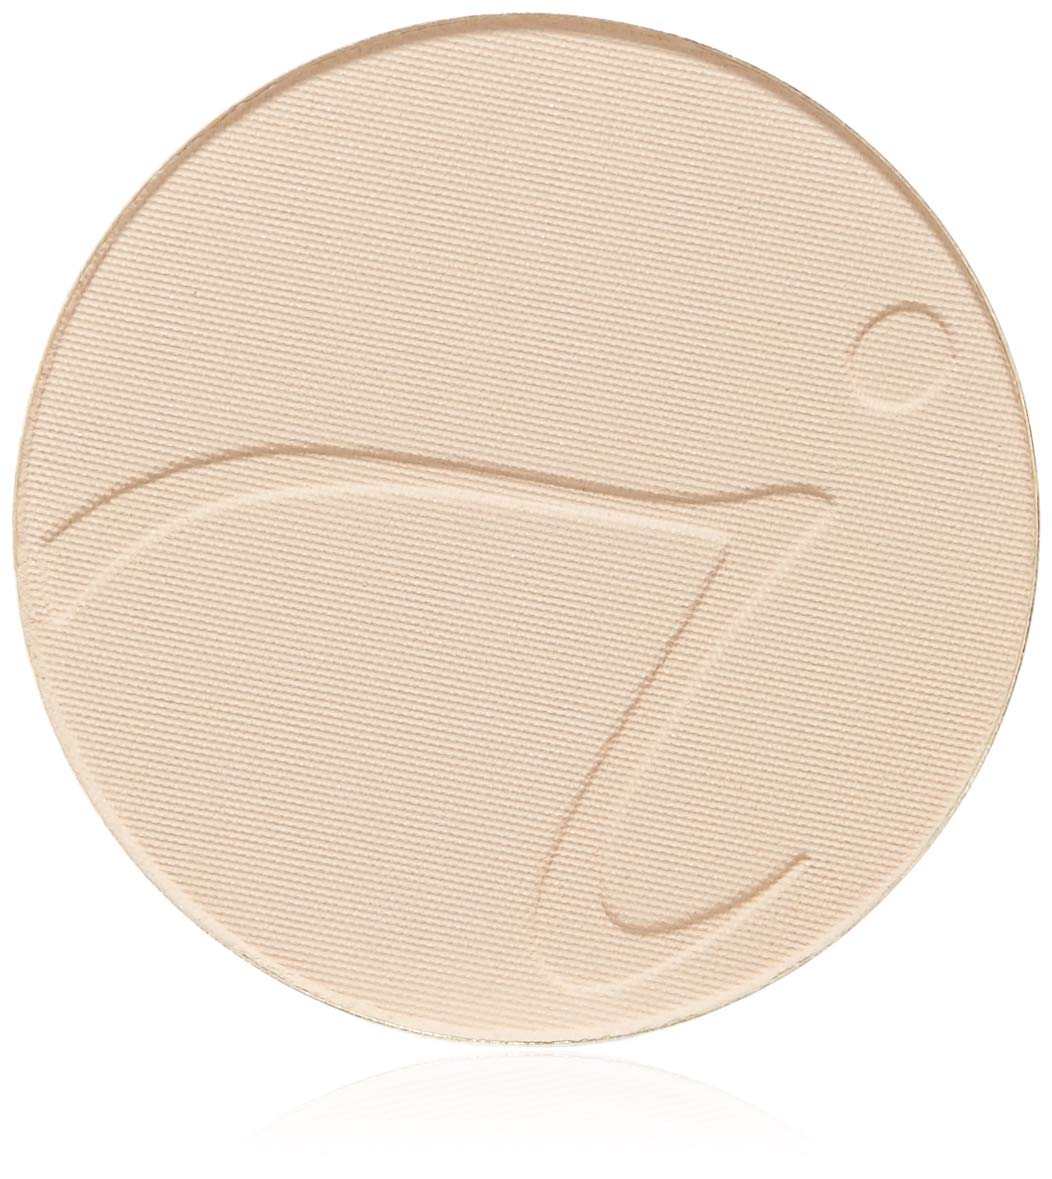 jane iredale PurePressed Base Mineral Foundation Refill or Refillable Compact Set| Semi Matte Pressed Powder with SPF | Talc Free, Vegan, Cruelty-Free